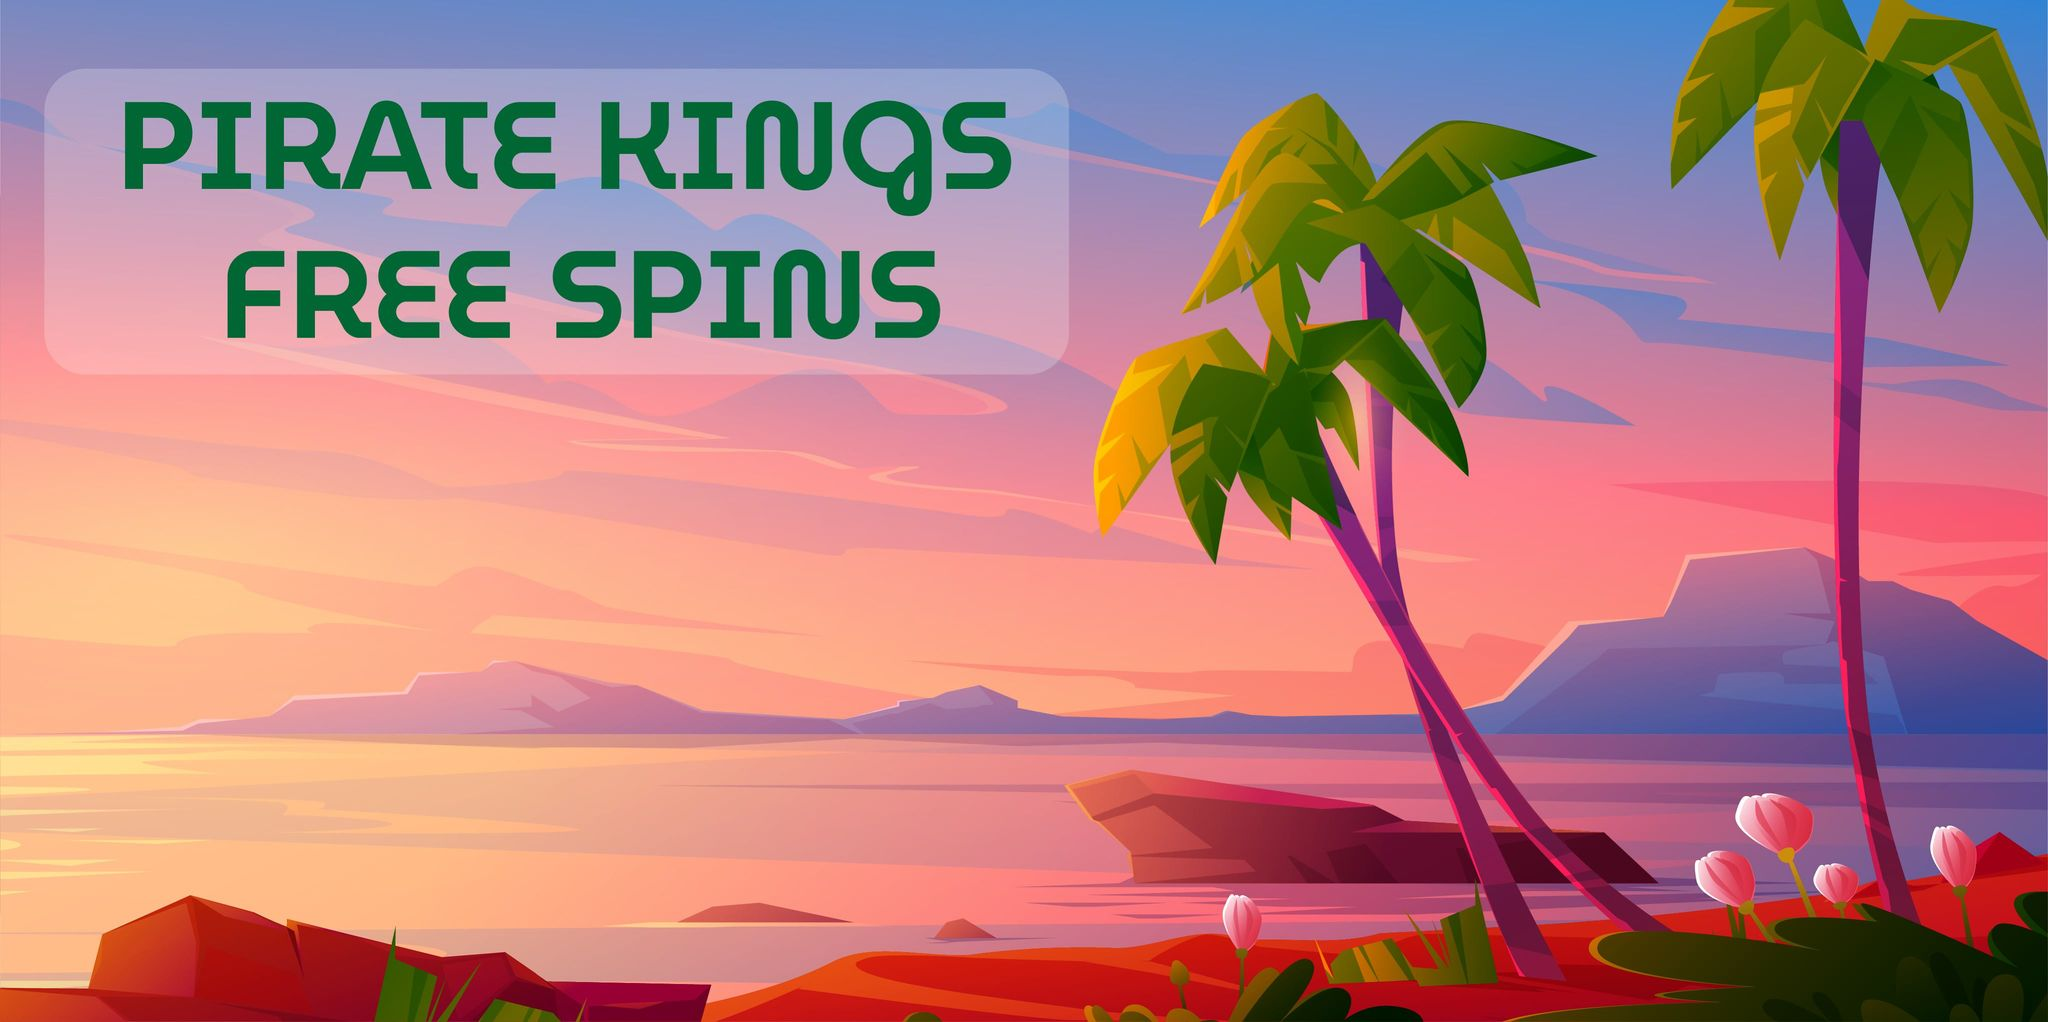 Know How To Get Pirate kings Free Spins- Earn Free Coins and Become The Most Dreaded Pirate Ever